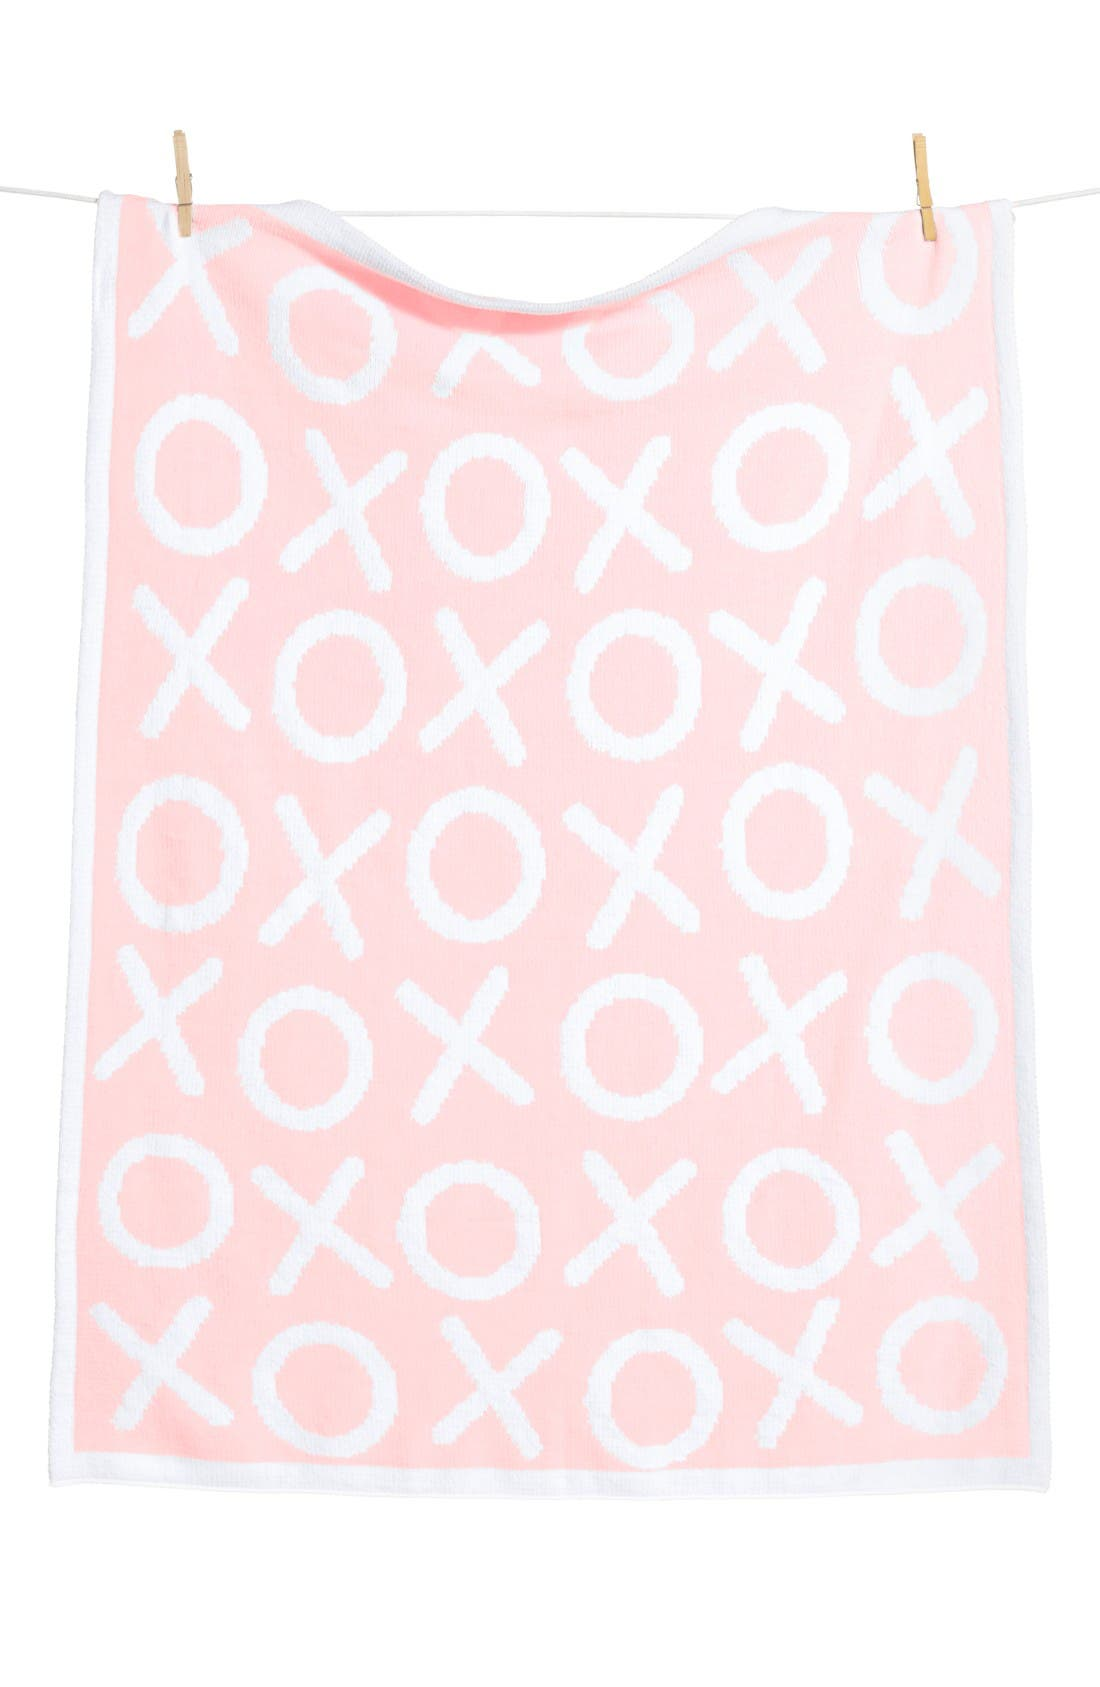 Chenille Blanket,                             Main thumbnail 1, color,                             Pink Baby Xo